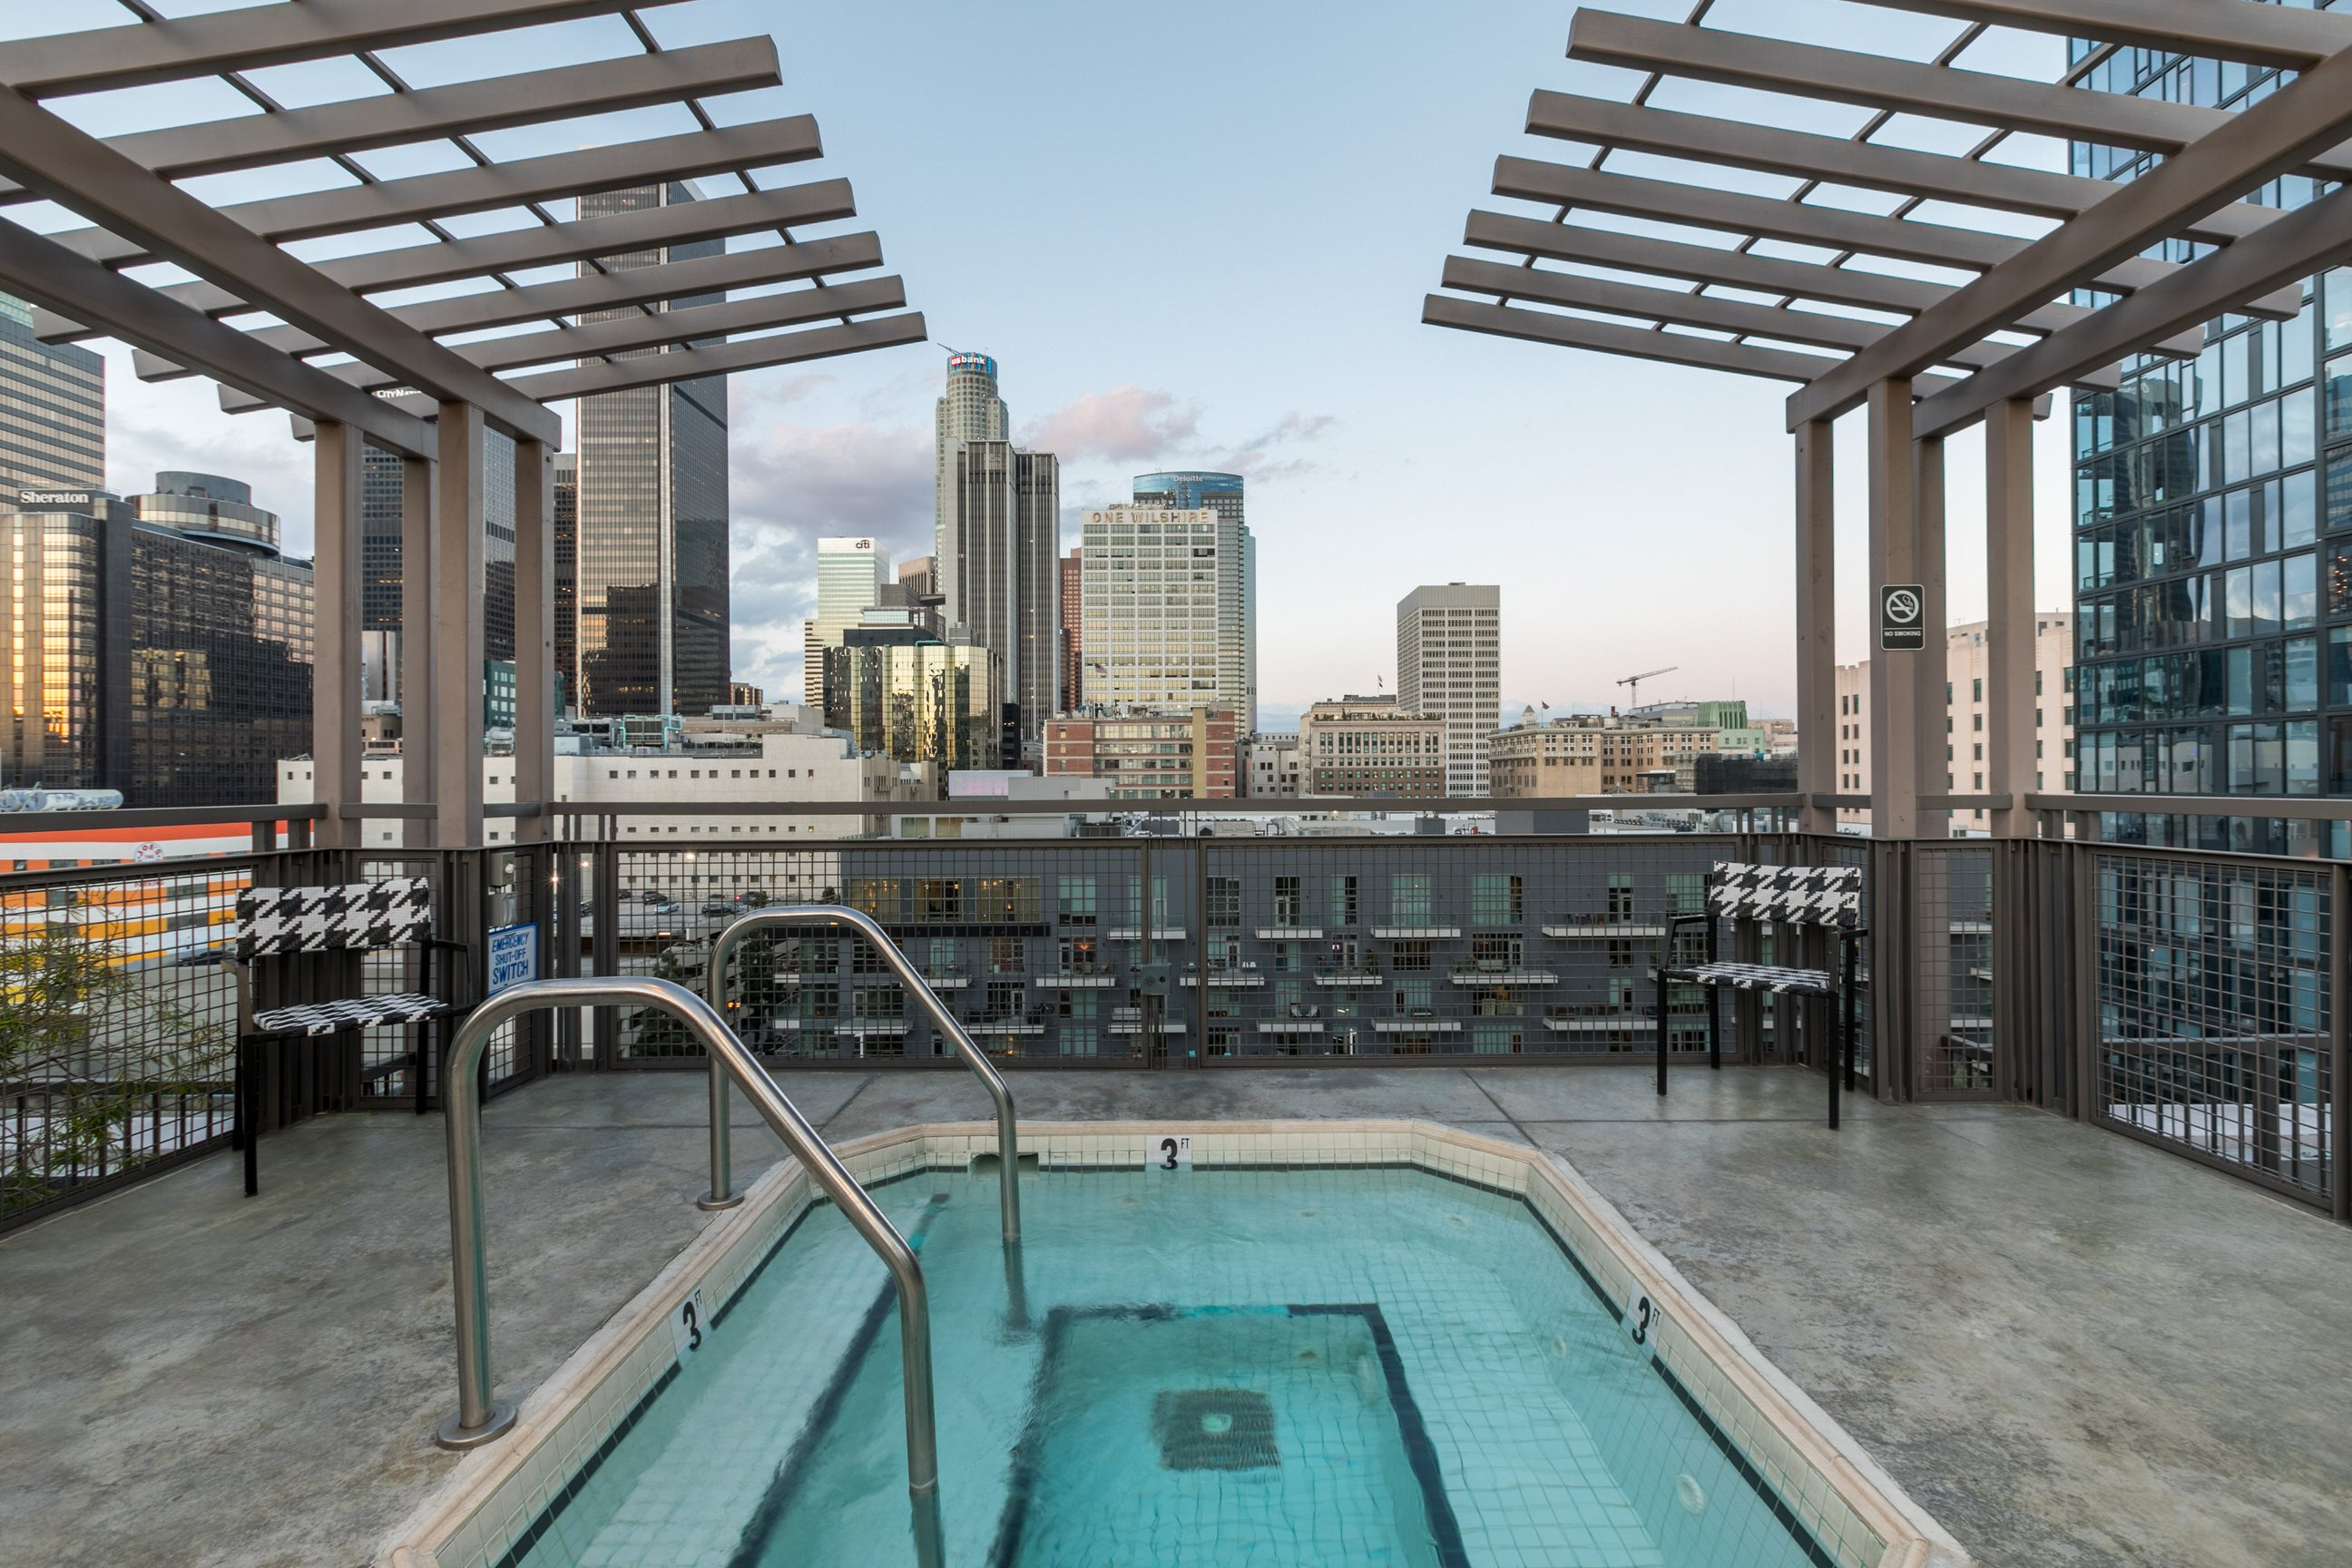 Rooftop Spa at South Park Lofts 818 S Grand Ave, Los Angeles, CA 90017